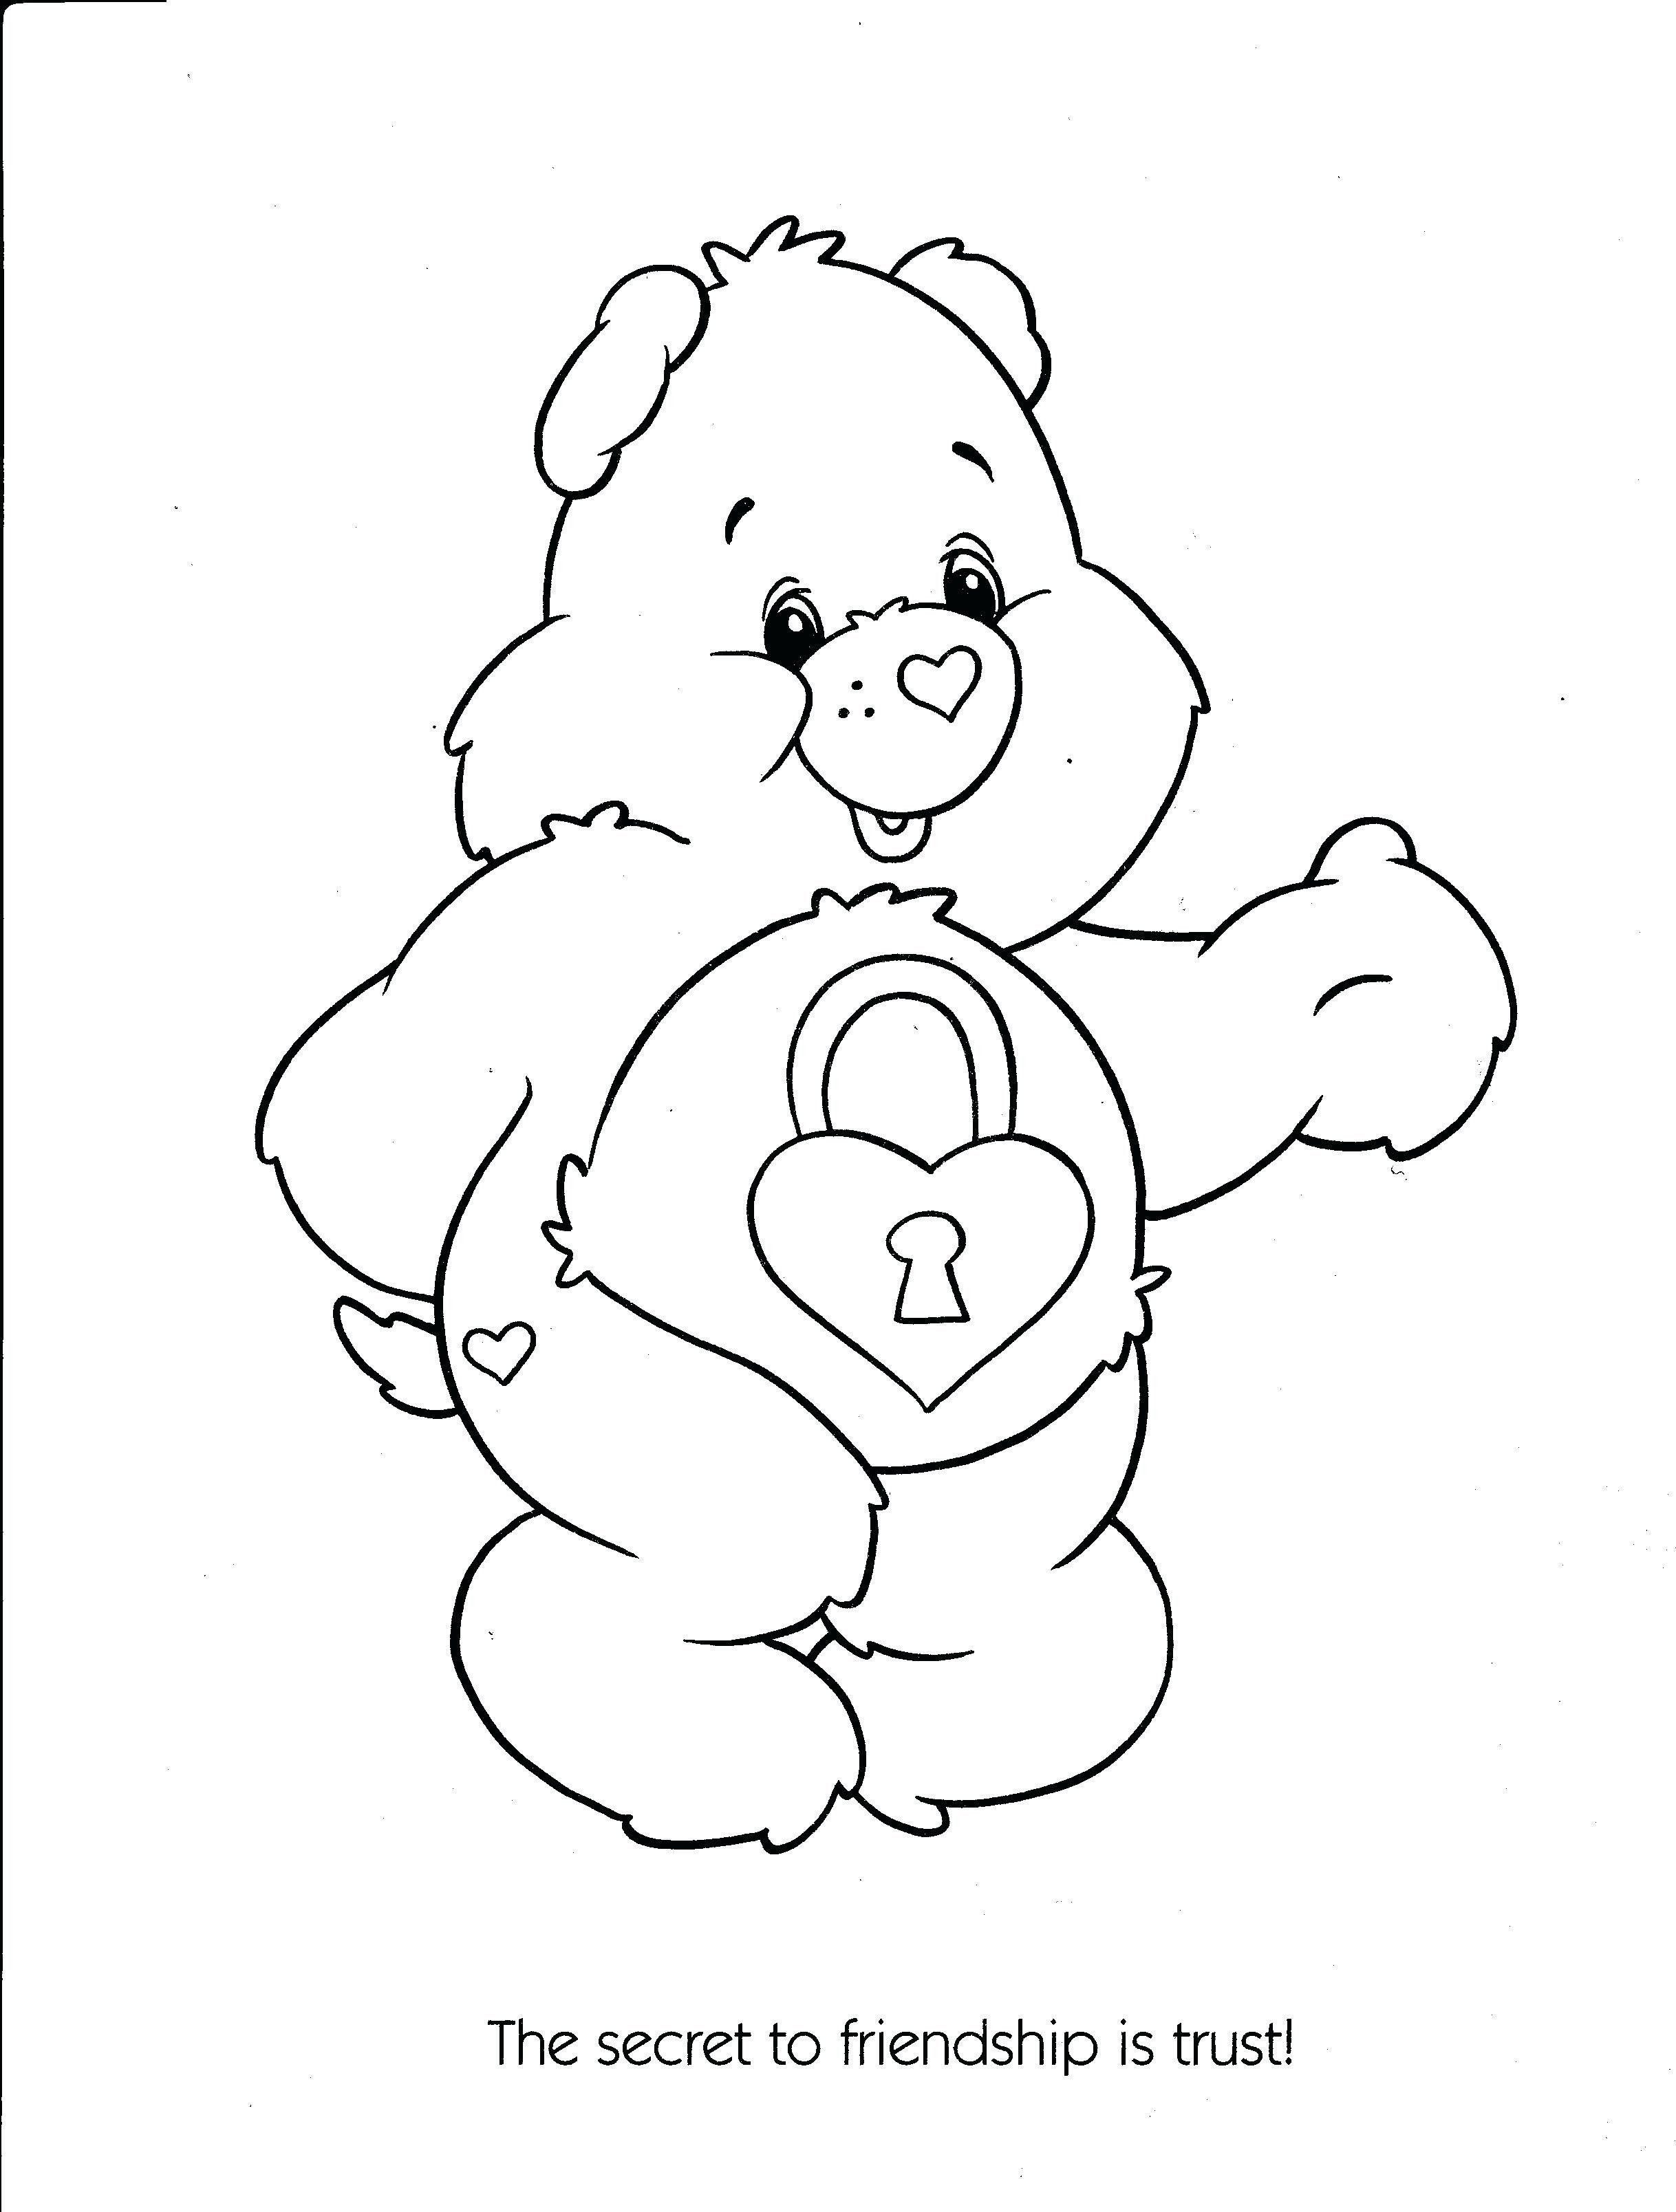 Care Bears Coloring Pages New Of Care Bear Coloring Pages 2 Sabadaphnecottage Bear Coloring Pages Cat Coloring Book Coloring Books